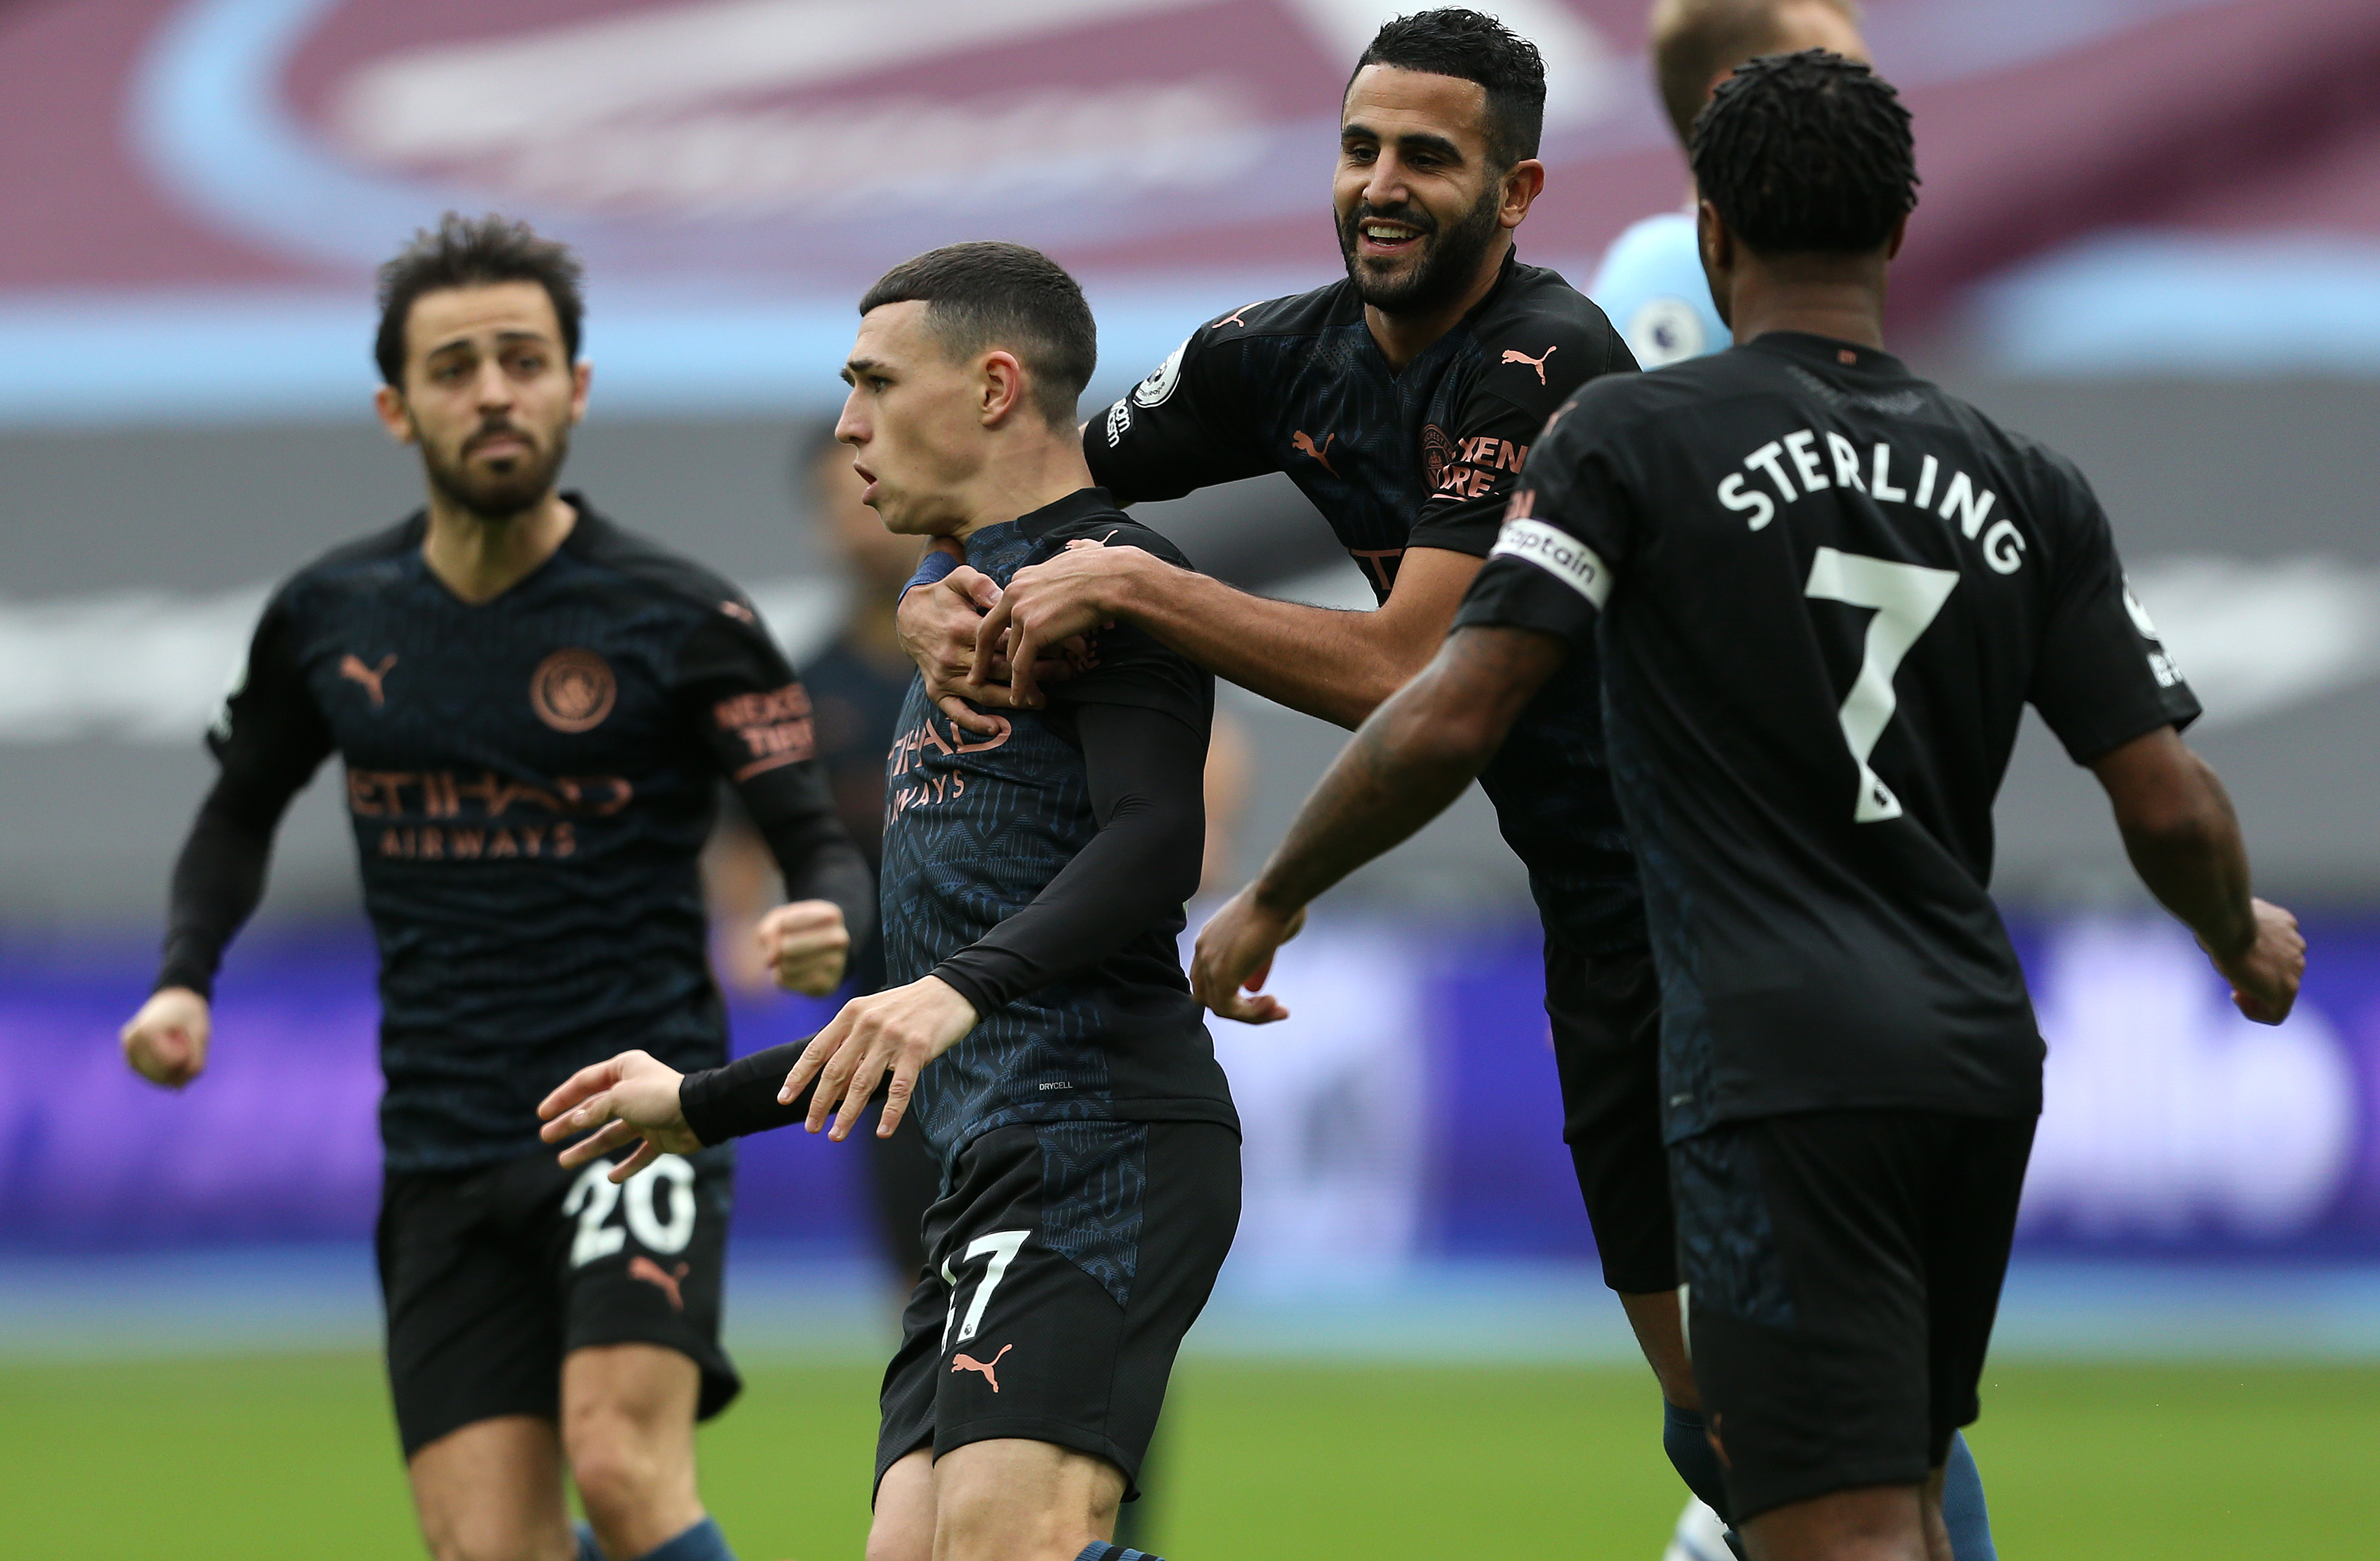 LEVEL BEST: Phil Foden is mobbed by his team mates after scoring